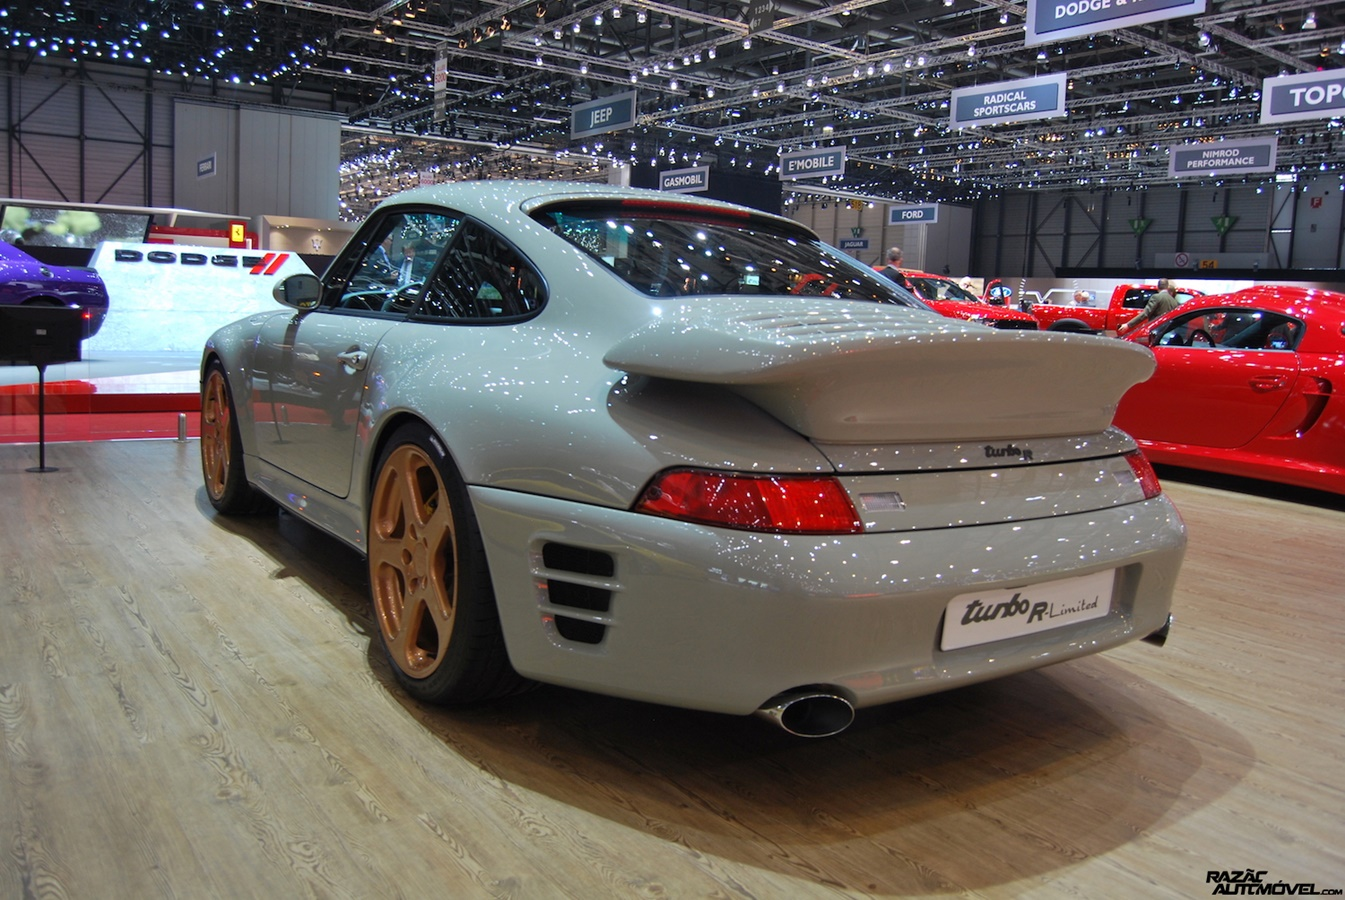 Ruf Turbo R Limited